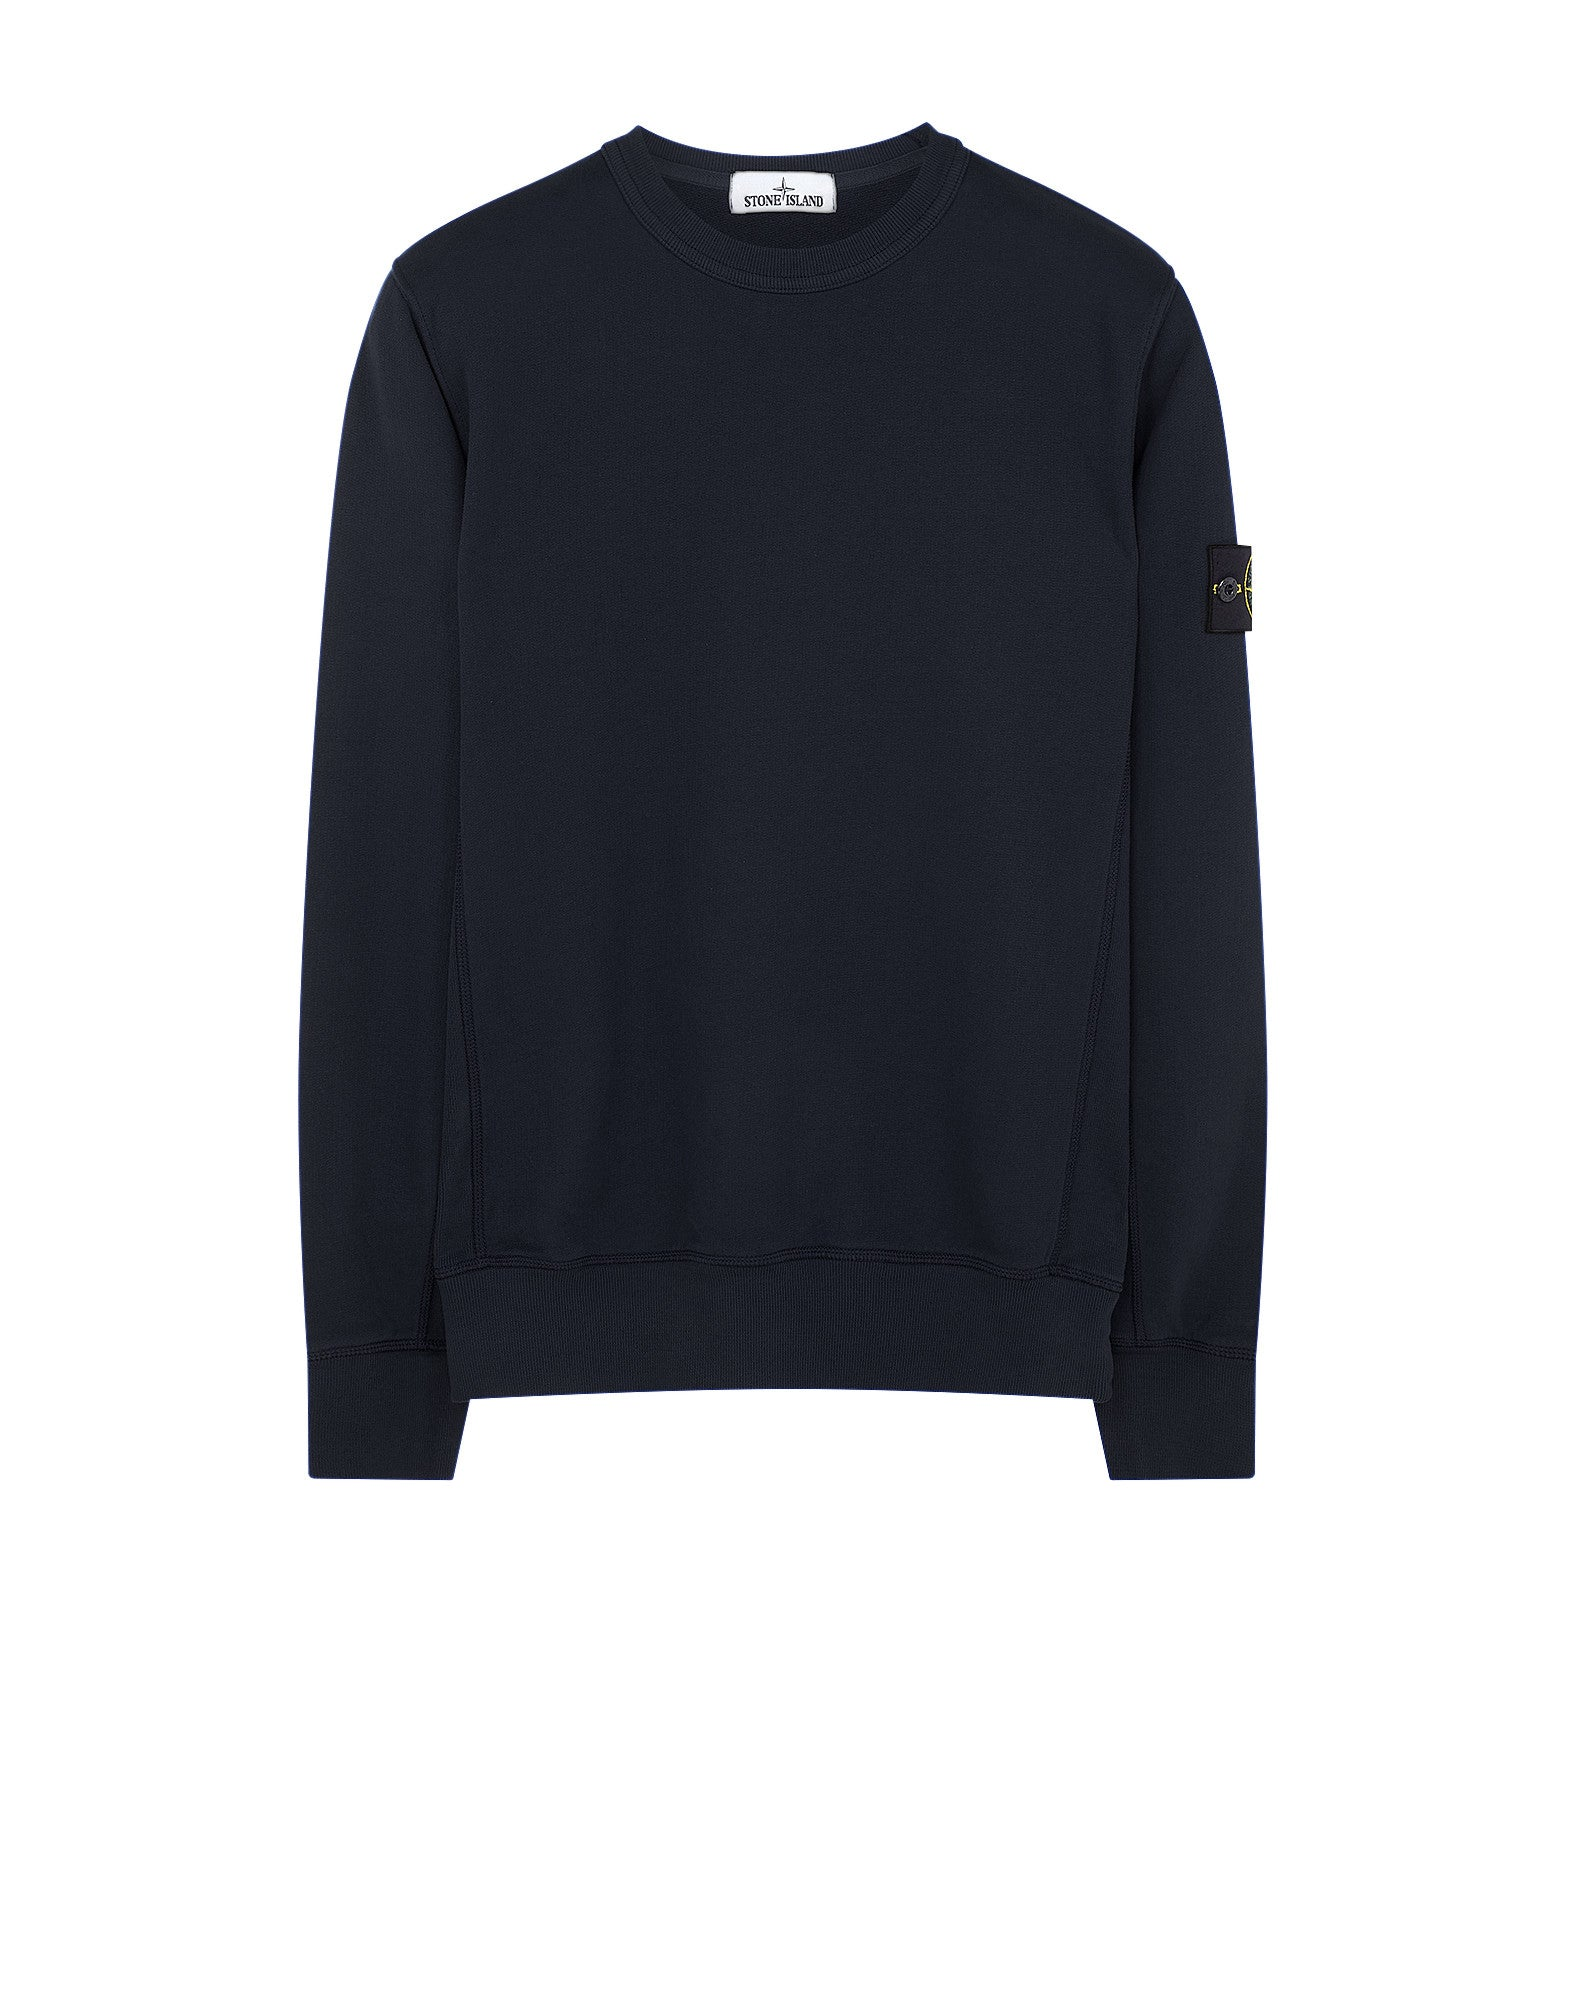 65320 Garment-Dyed Sweatshirt in Navy Blue